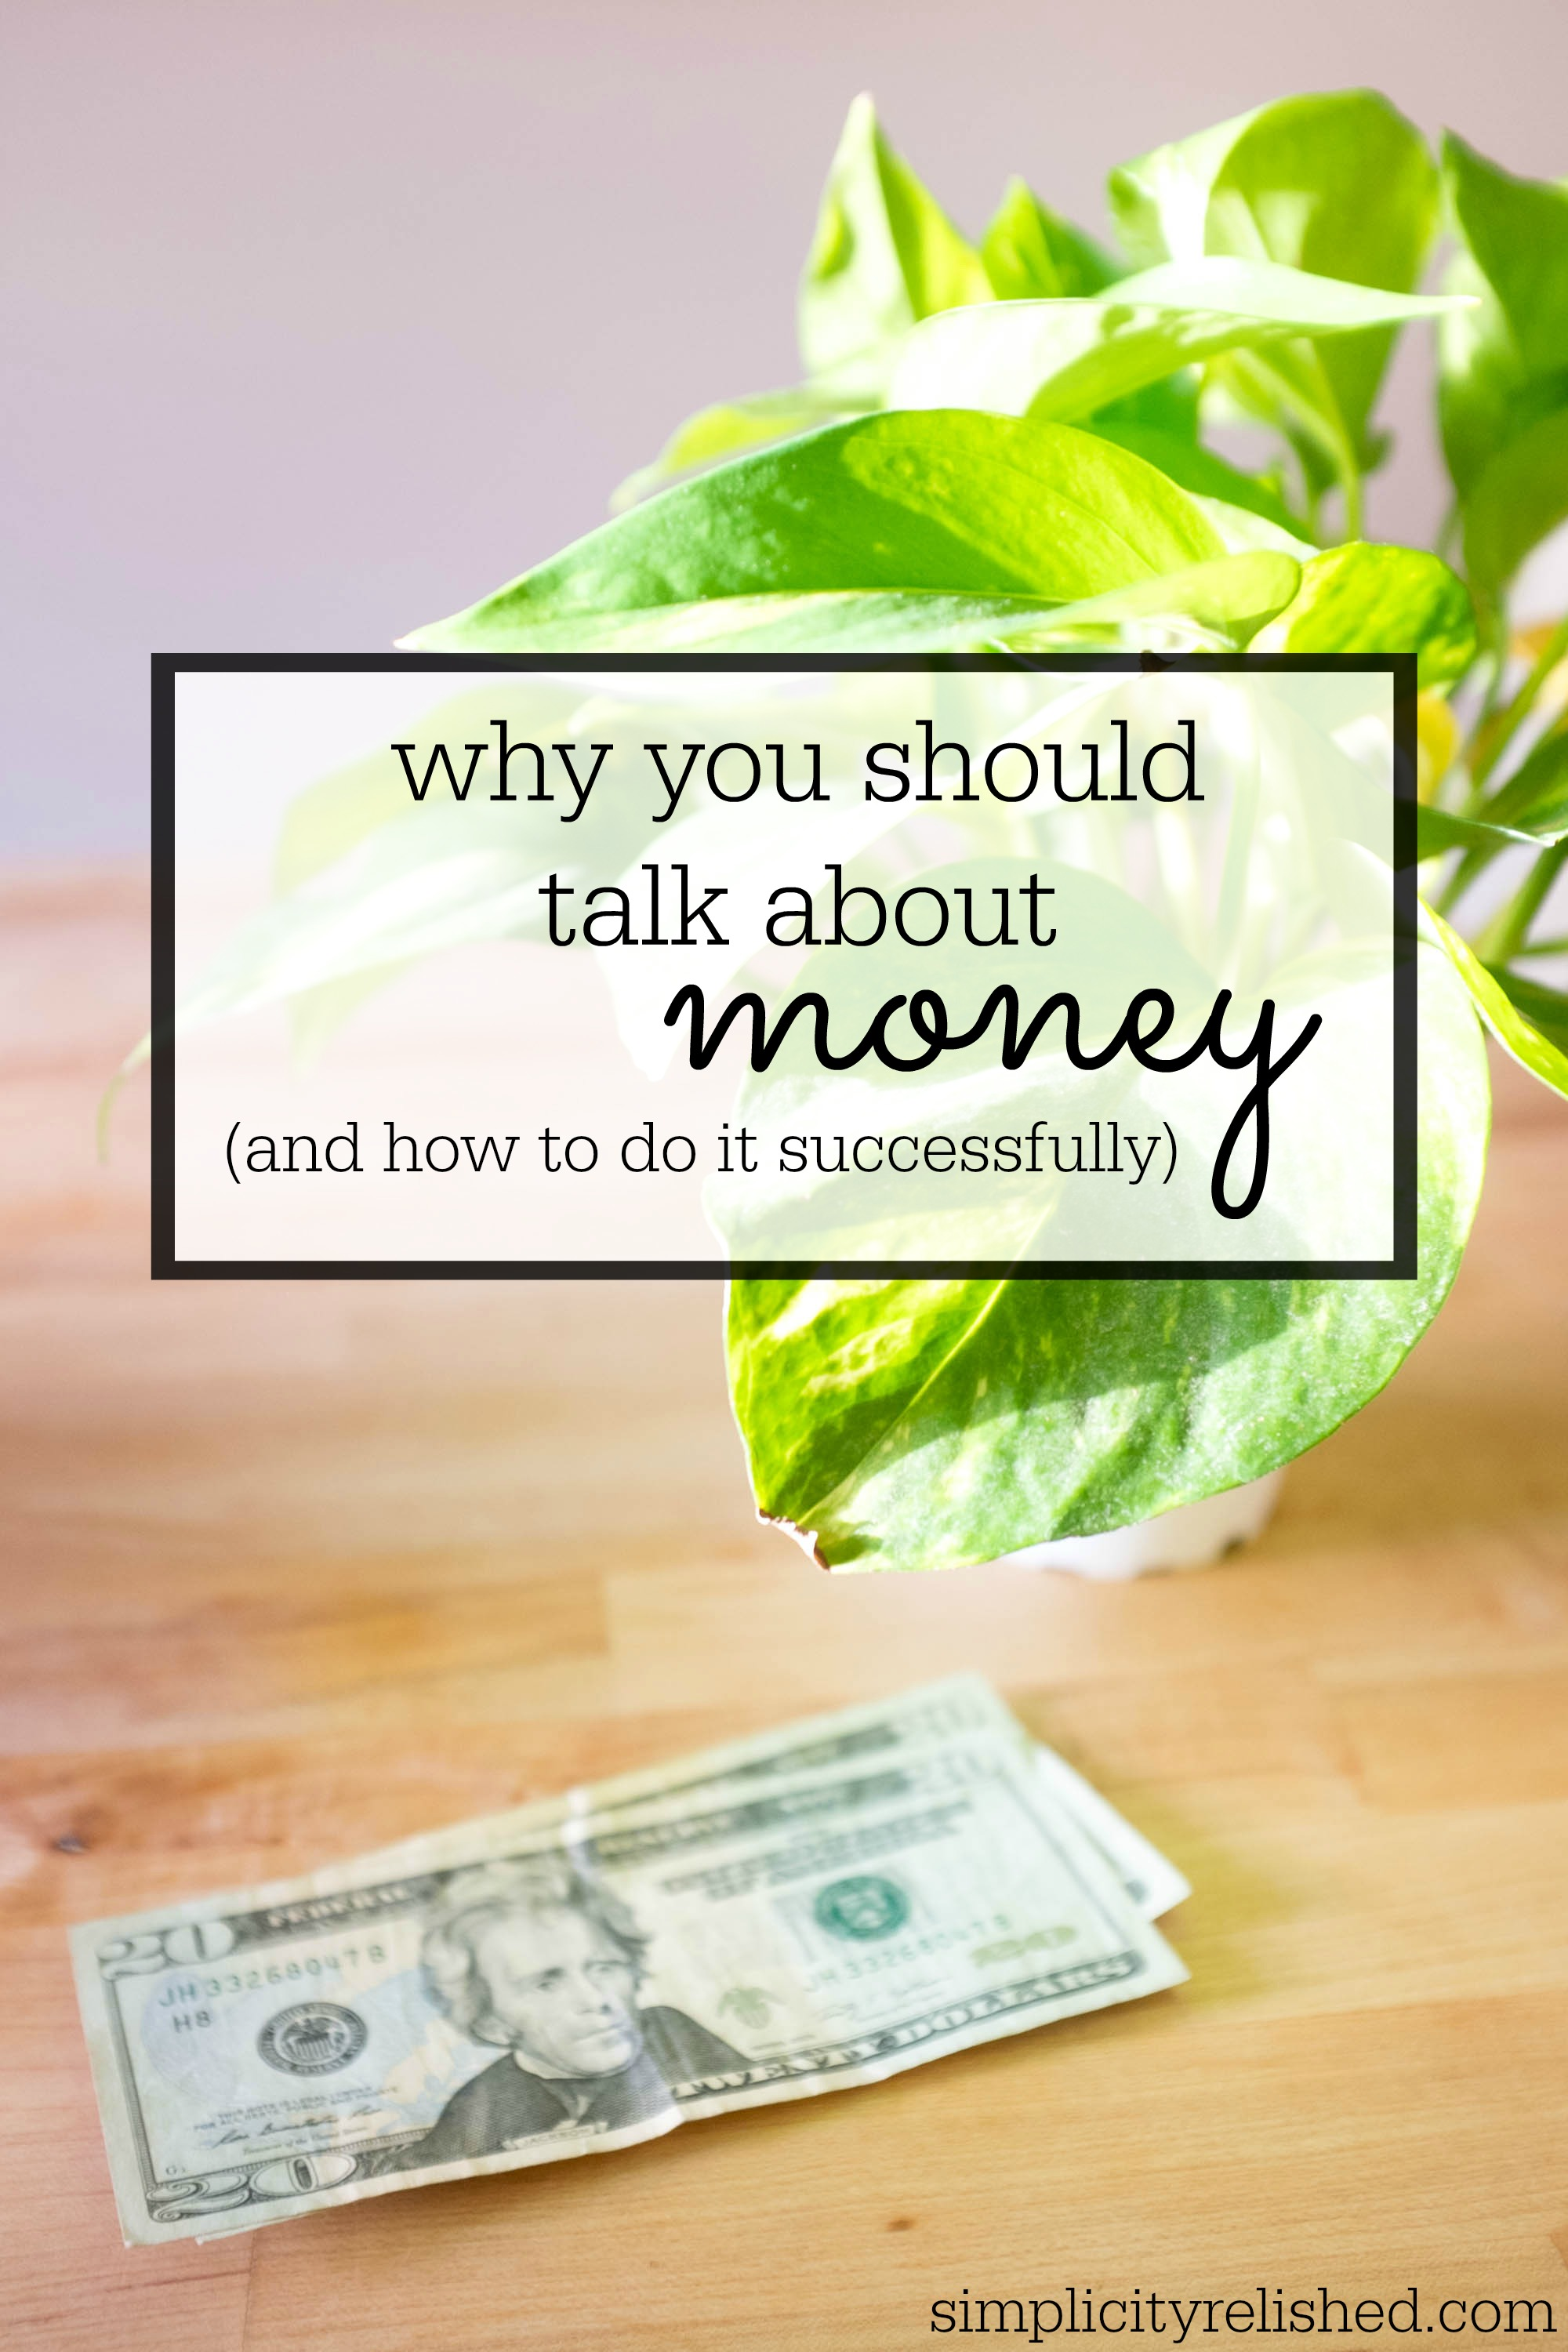 Why you should talk about money- and how to make your conversations successful